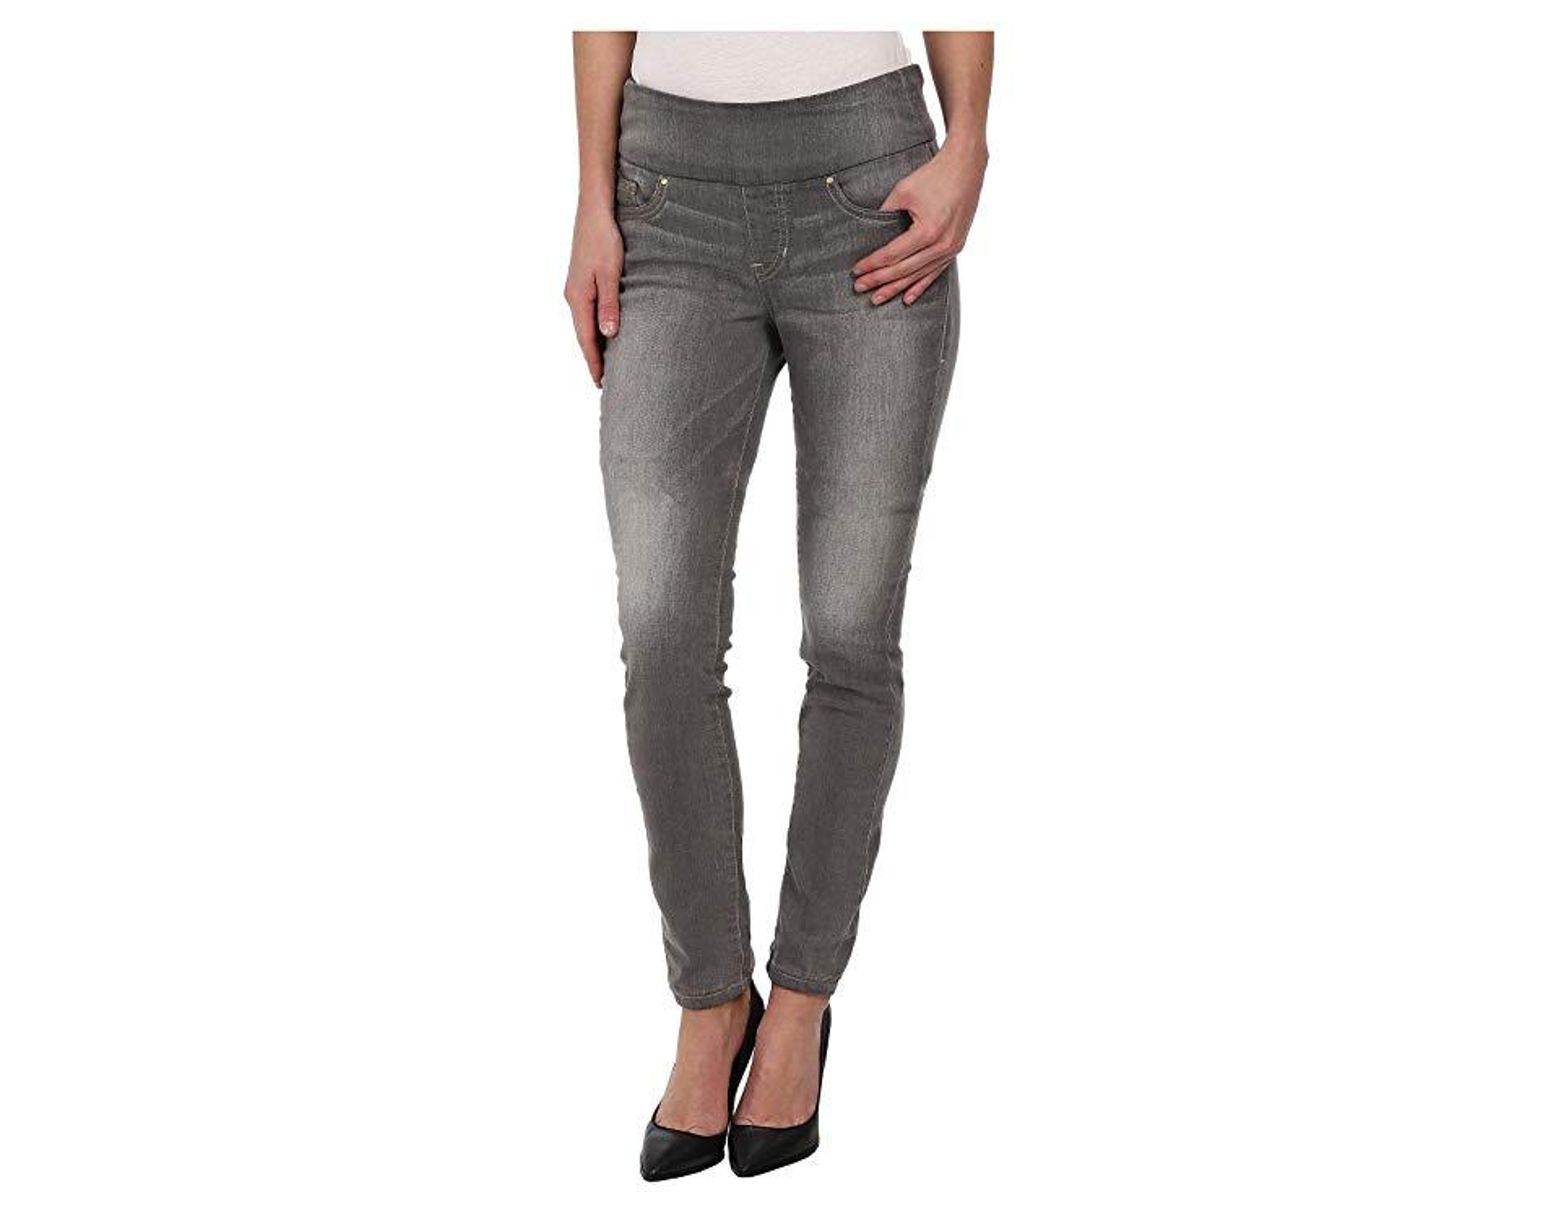 2dccd1bb Jag Jeans Nora Pull-on Skinny Knit Denim In Antique Tin (antique Tin) Jeans  in Gray - Save 26% - Lyst